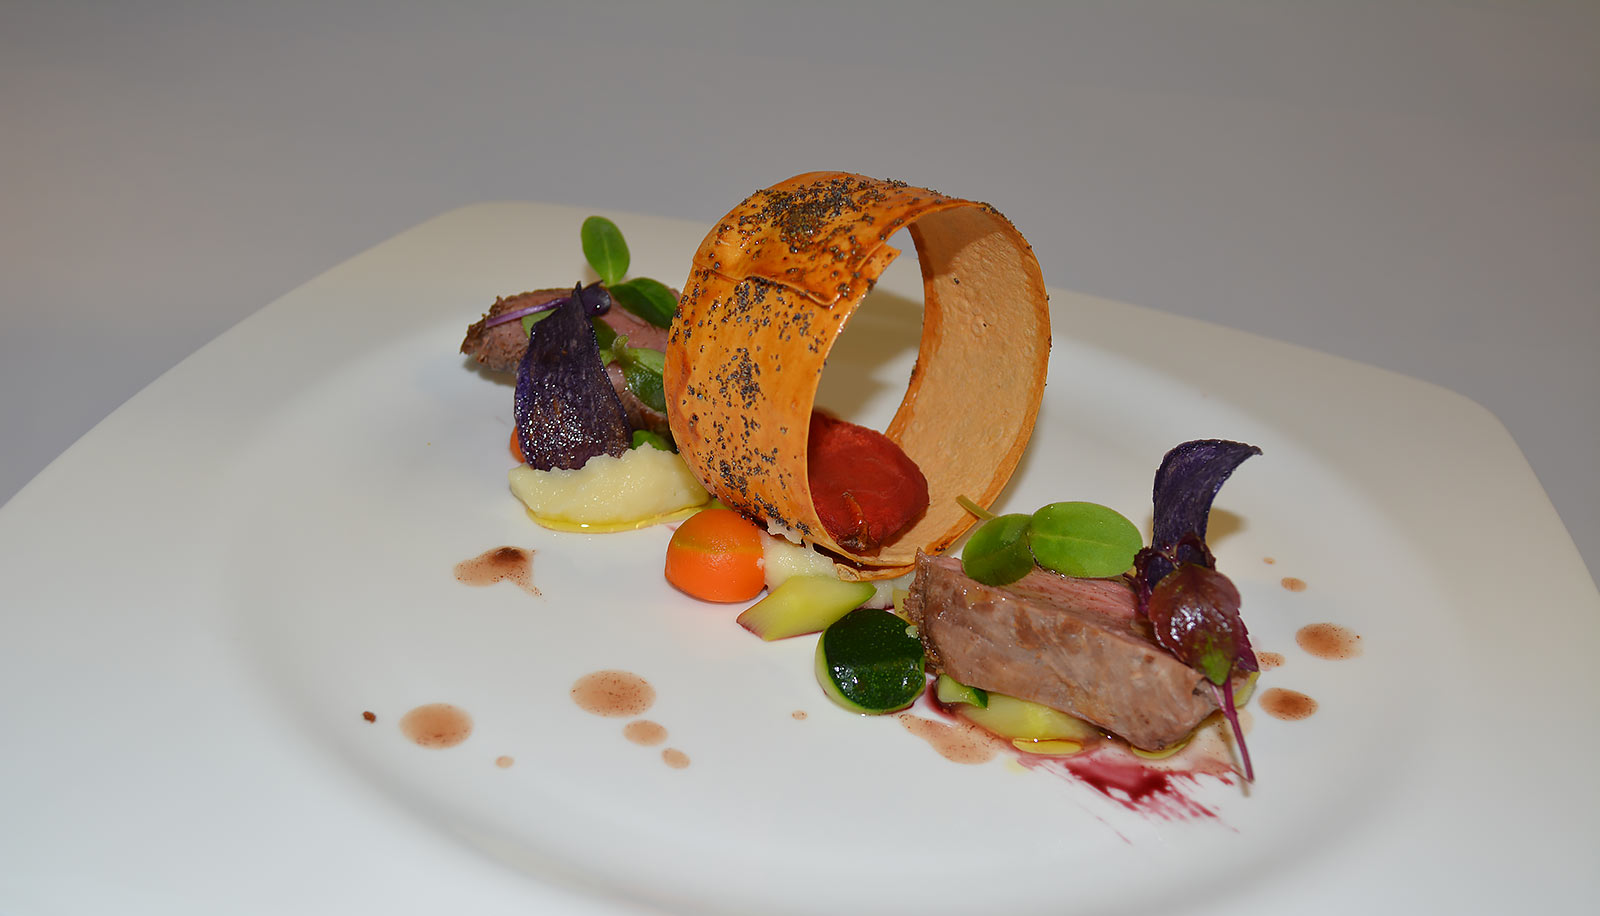 Gourmet dish with meat and vegetables